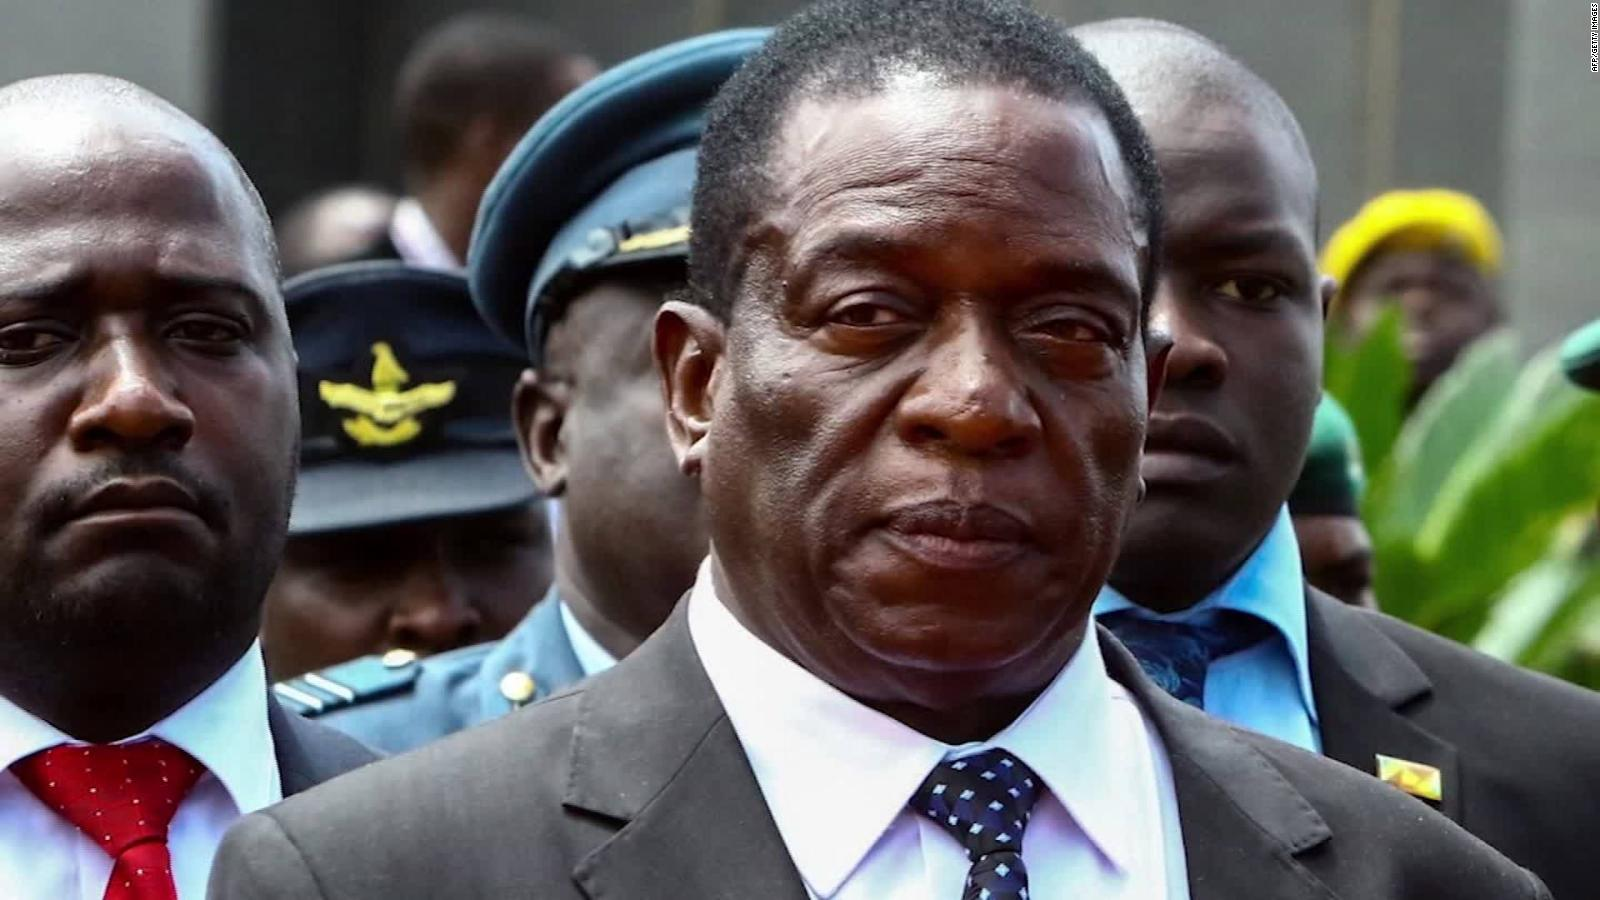 President Mnangagwa is surrounded by crisis from all fronts